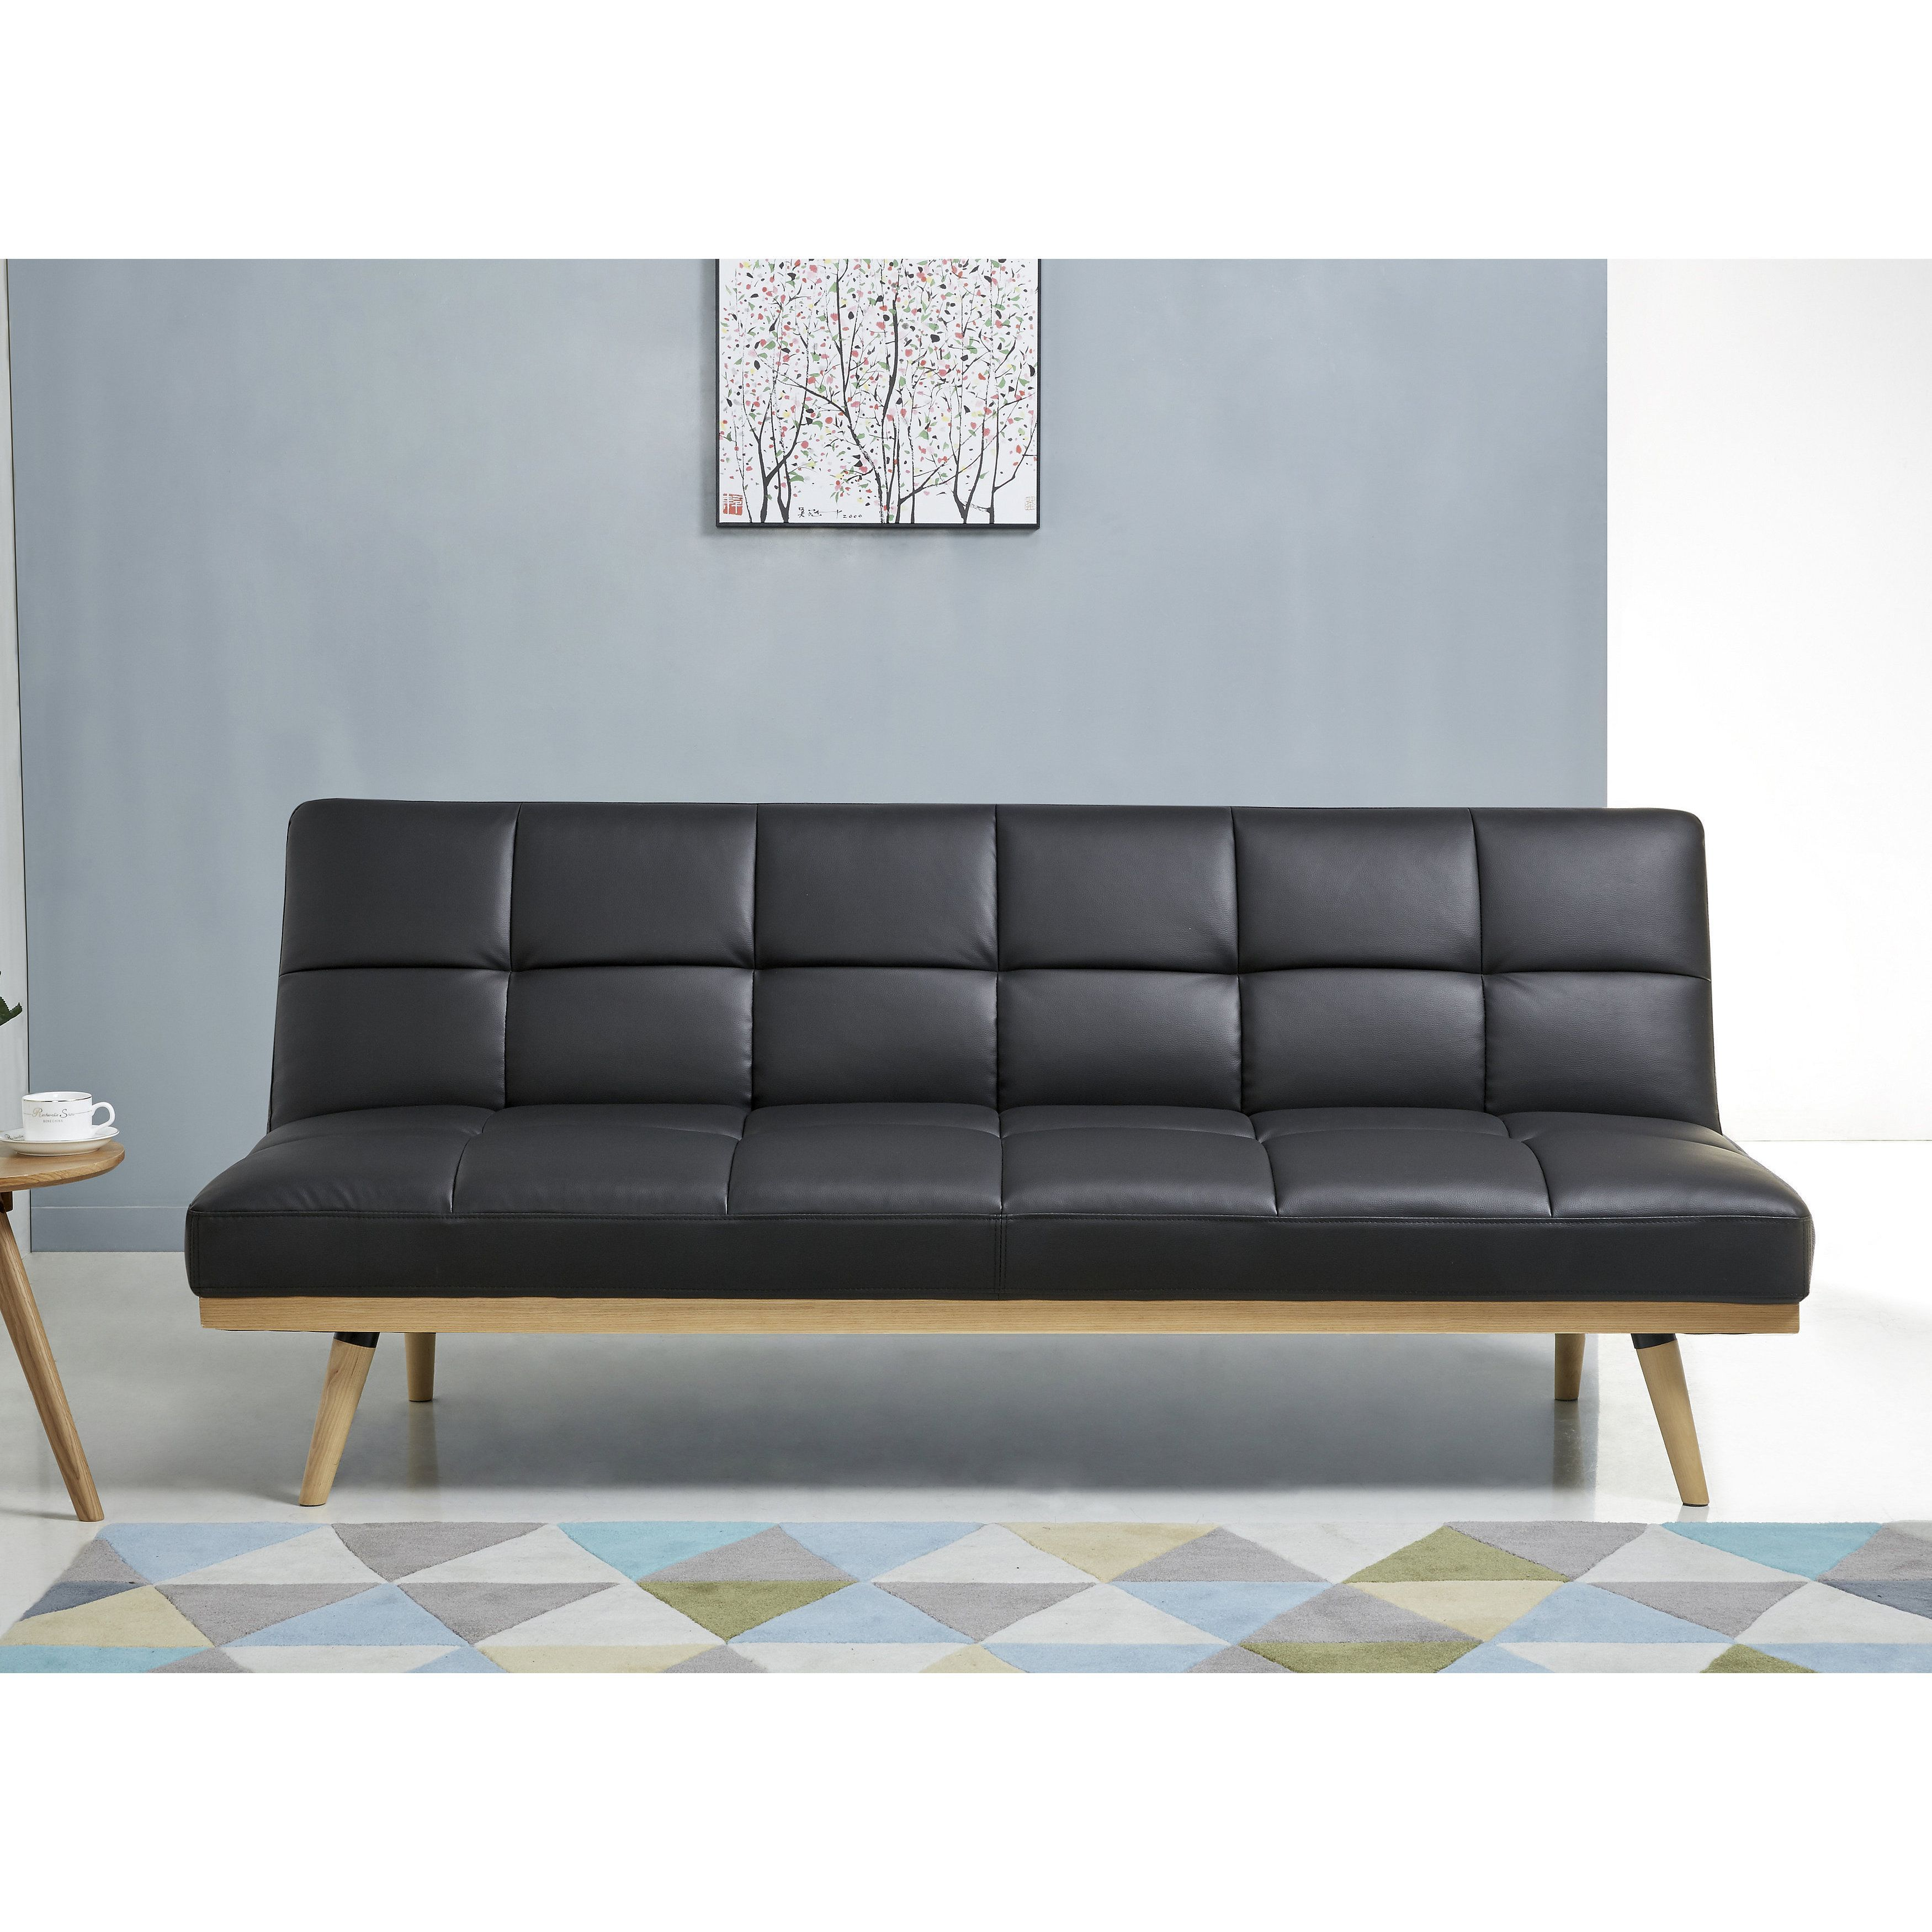 Best 25+ Black leather sofa bed ideas on Pinterest | Black leather sofas,  Living room ideas with black leather sofa and Black living rooms